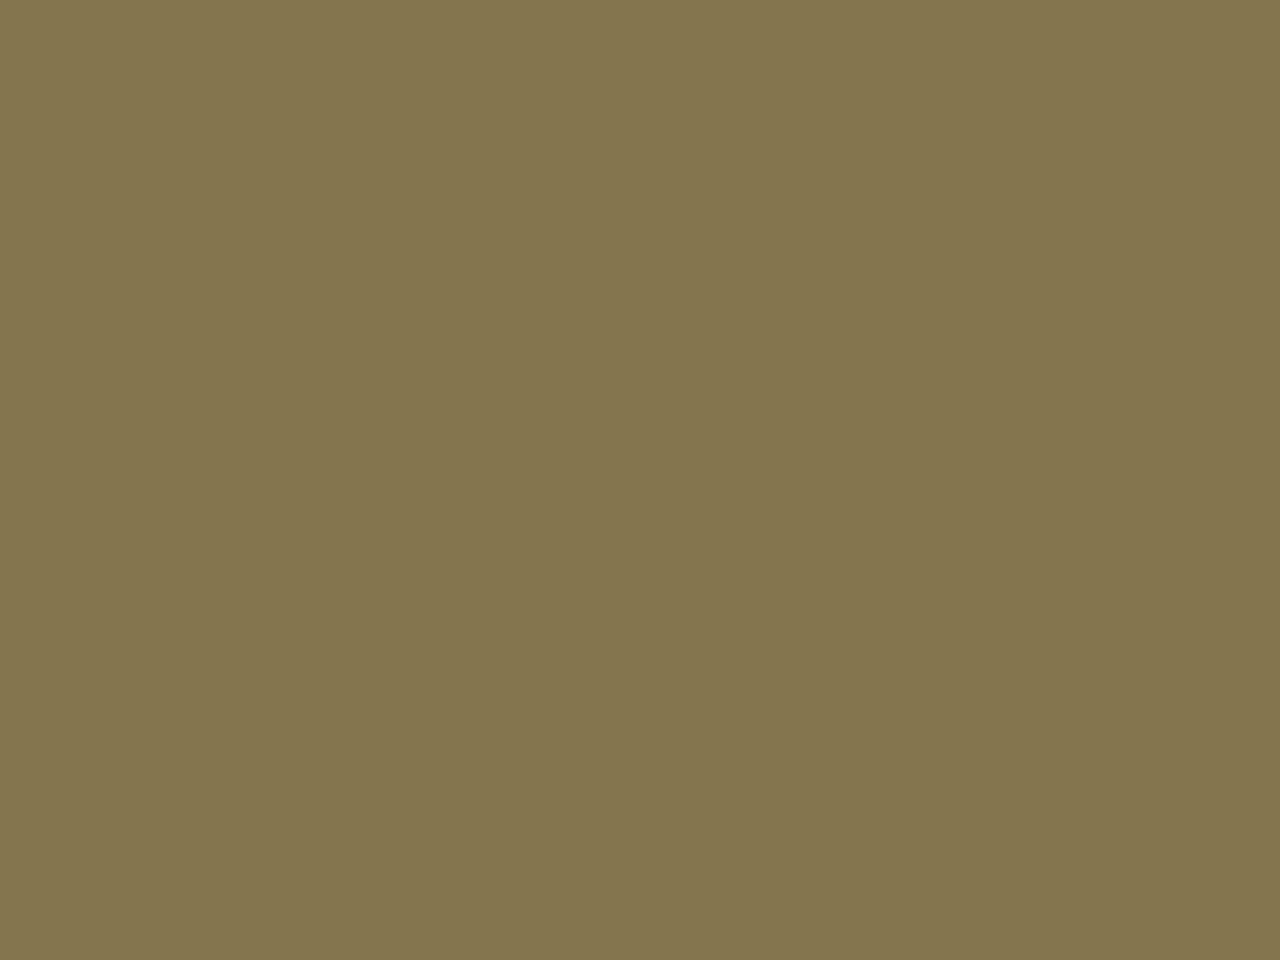 1280x960 Gold Fusion Solid Color Background